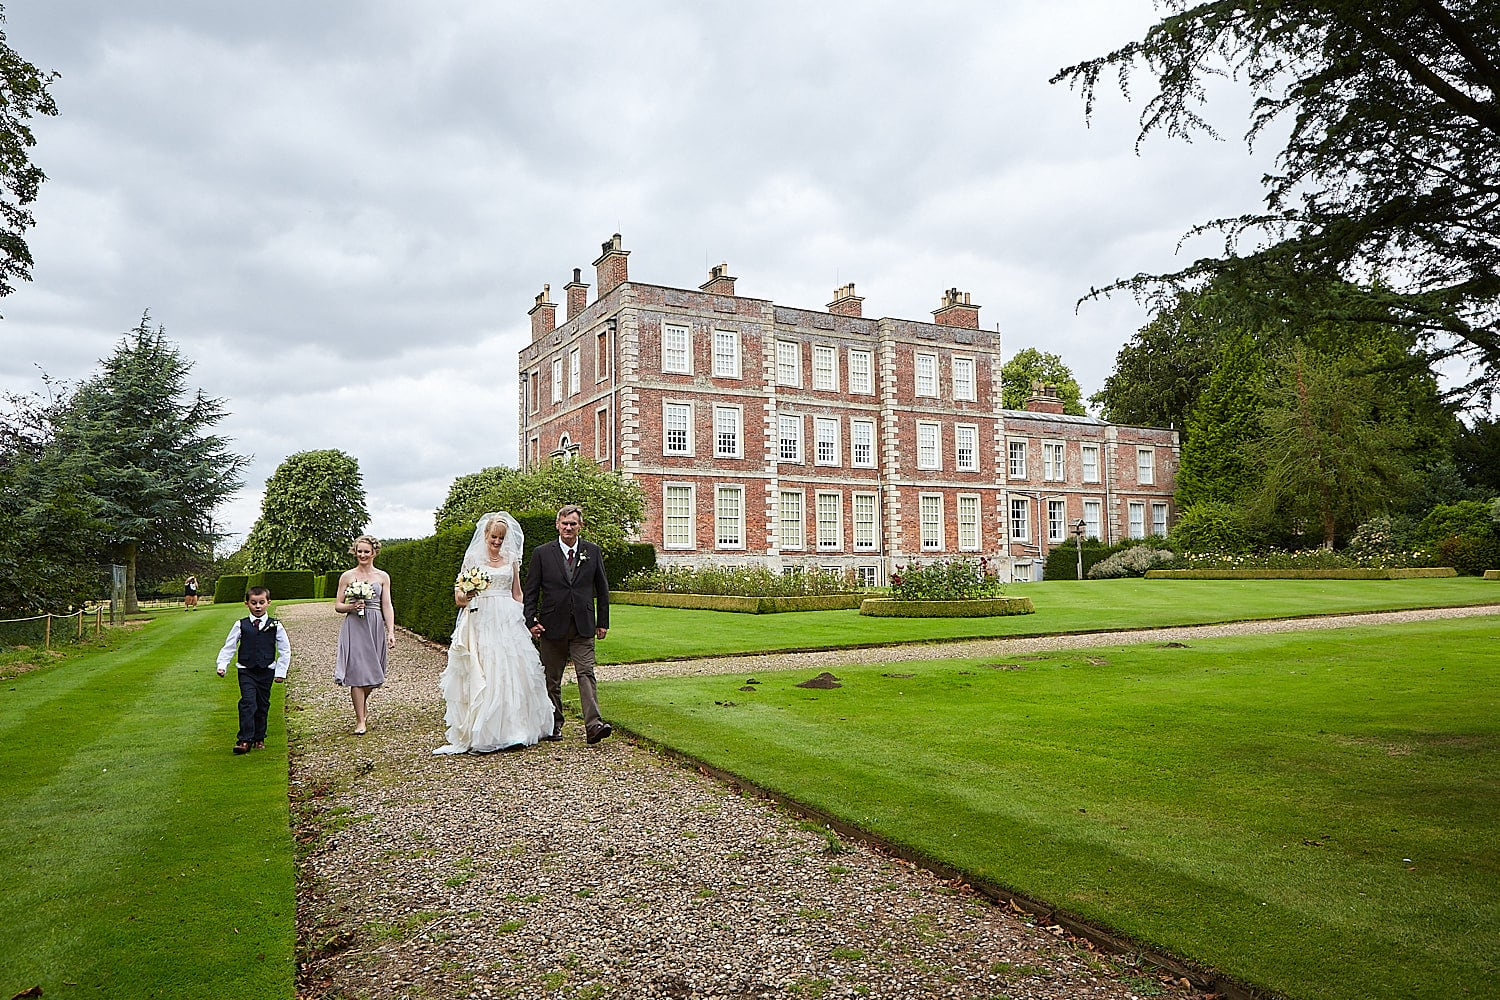 A bridal party walk past the main house at Gunby Hall towards St. Peters Church